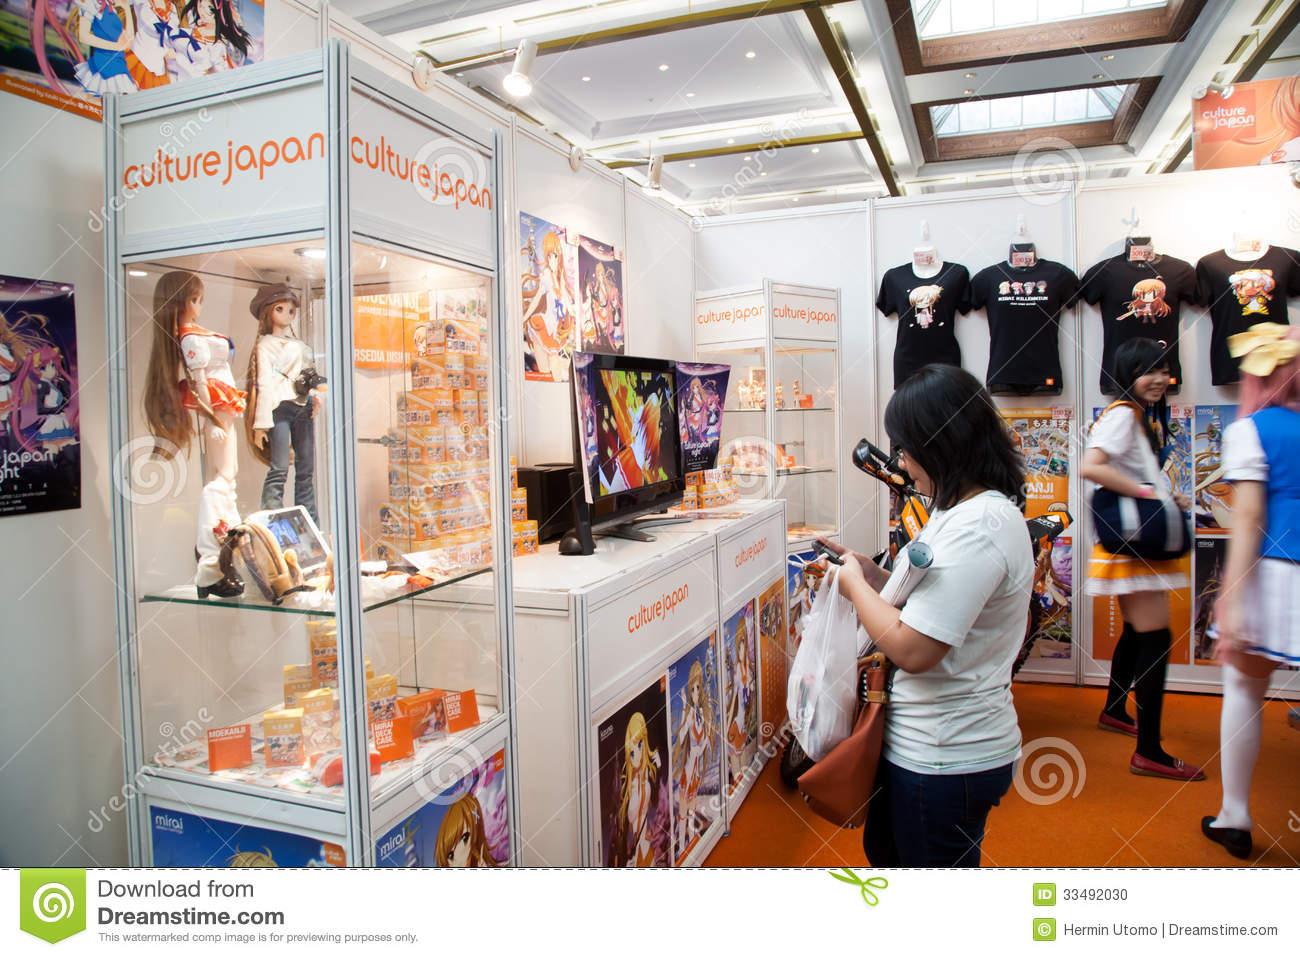 Anime Expo Stands : Culture japan stand in anime festival asia indonesia